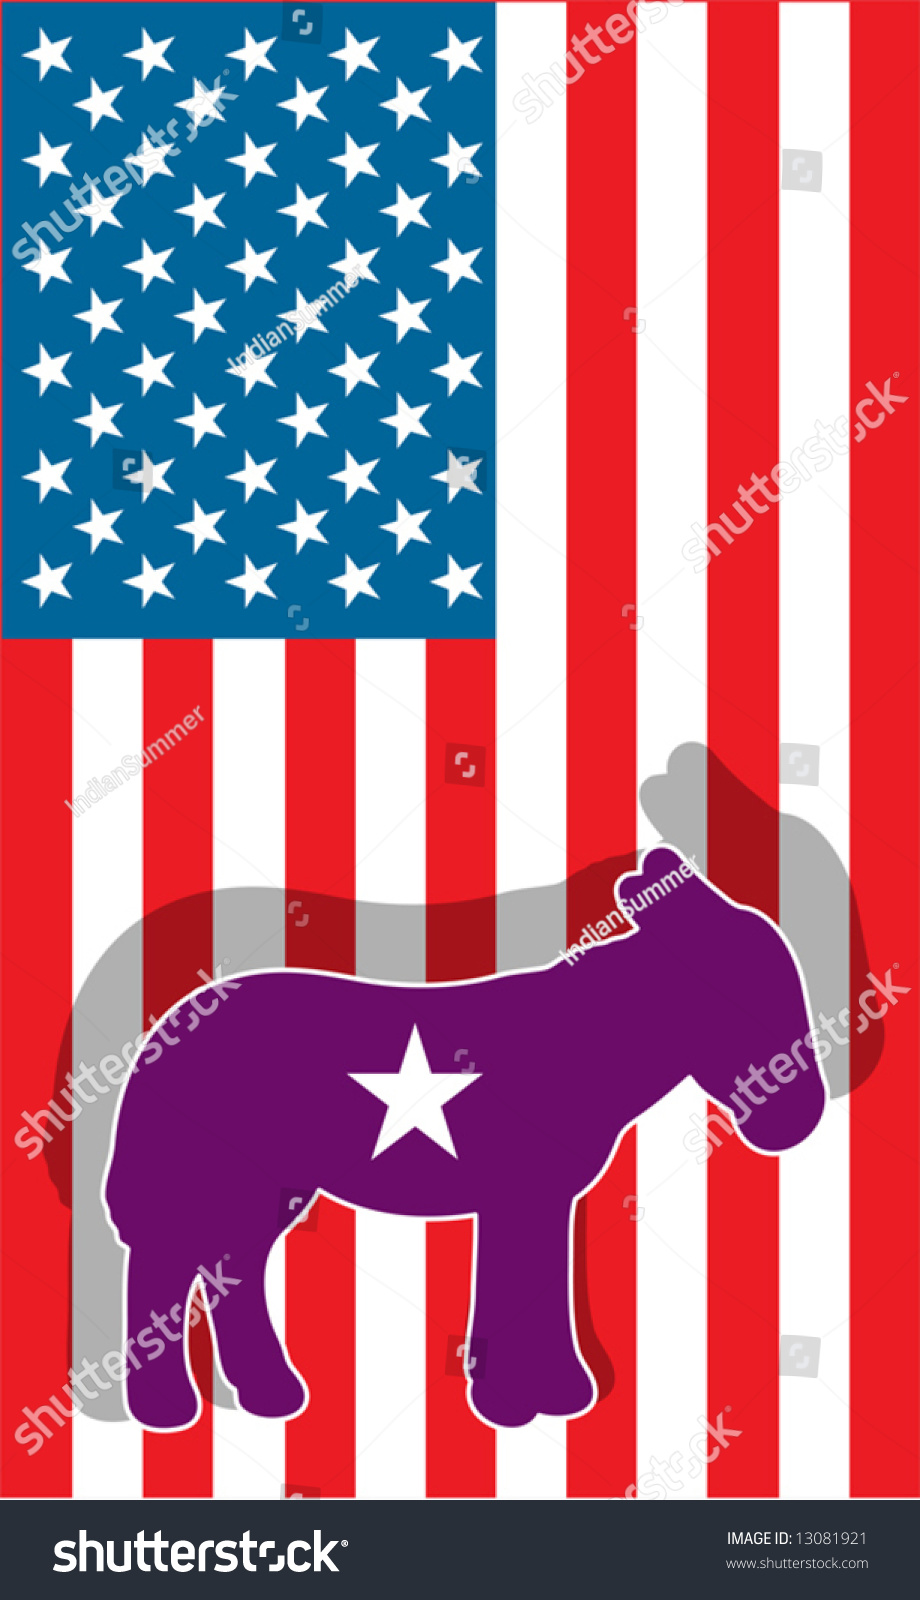 Democratic party symbol donkey against usa stock vector 13081921 democratic party symbol donkey against usa flag biocorpaavc Image collections